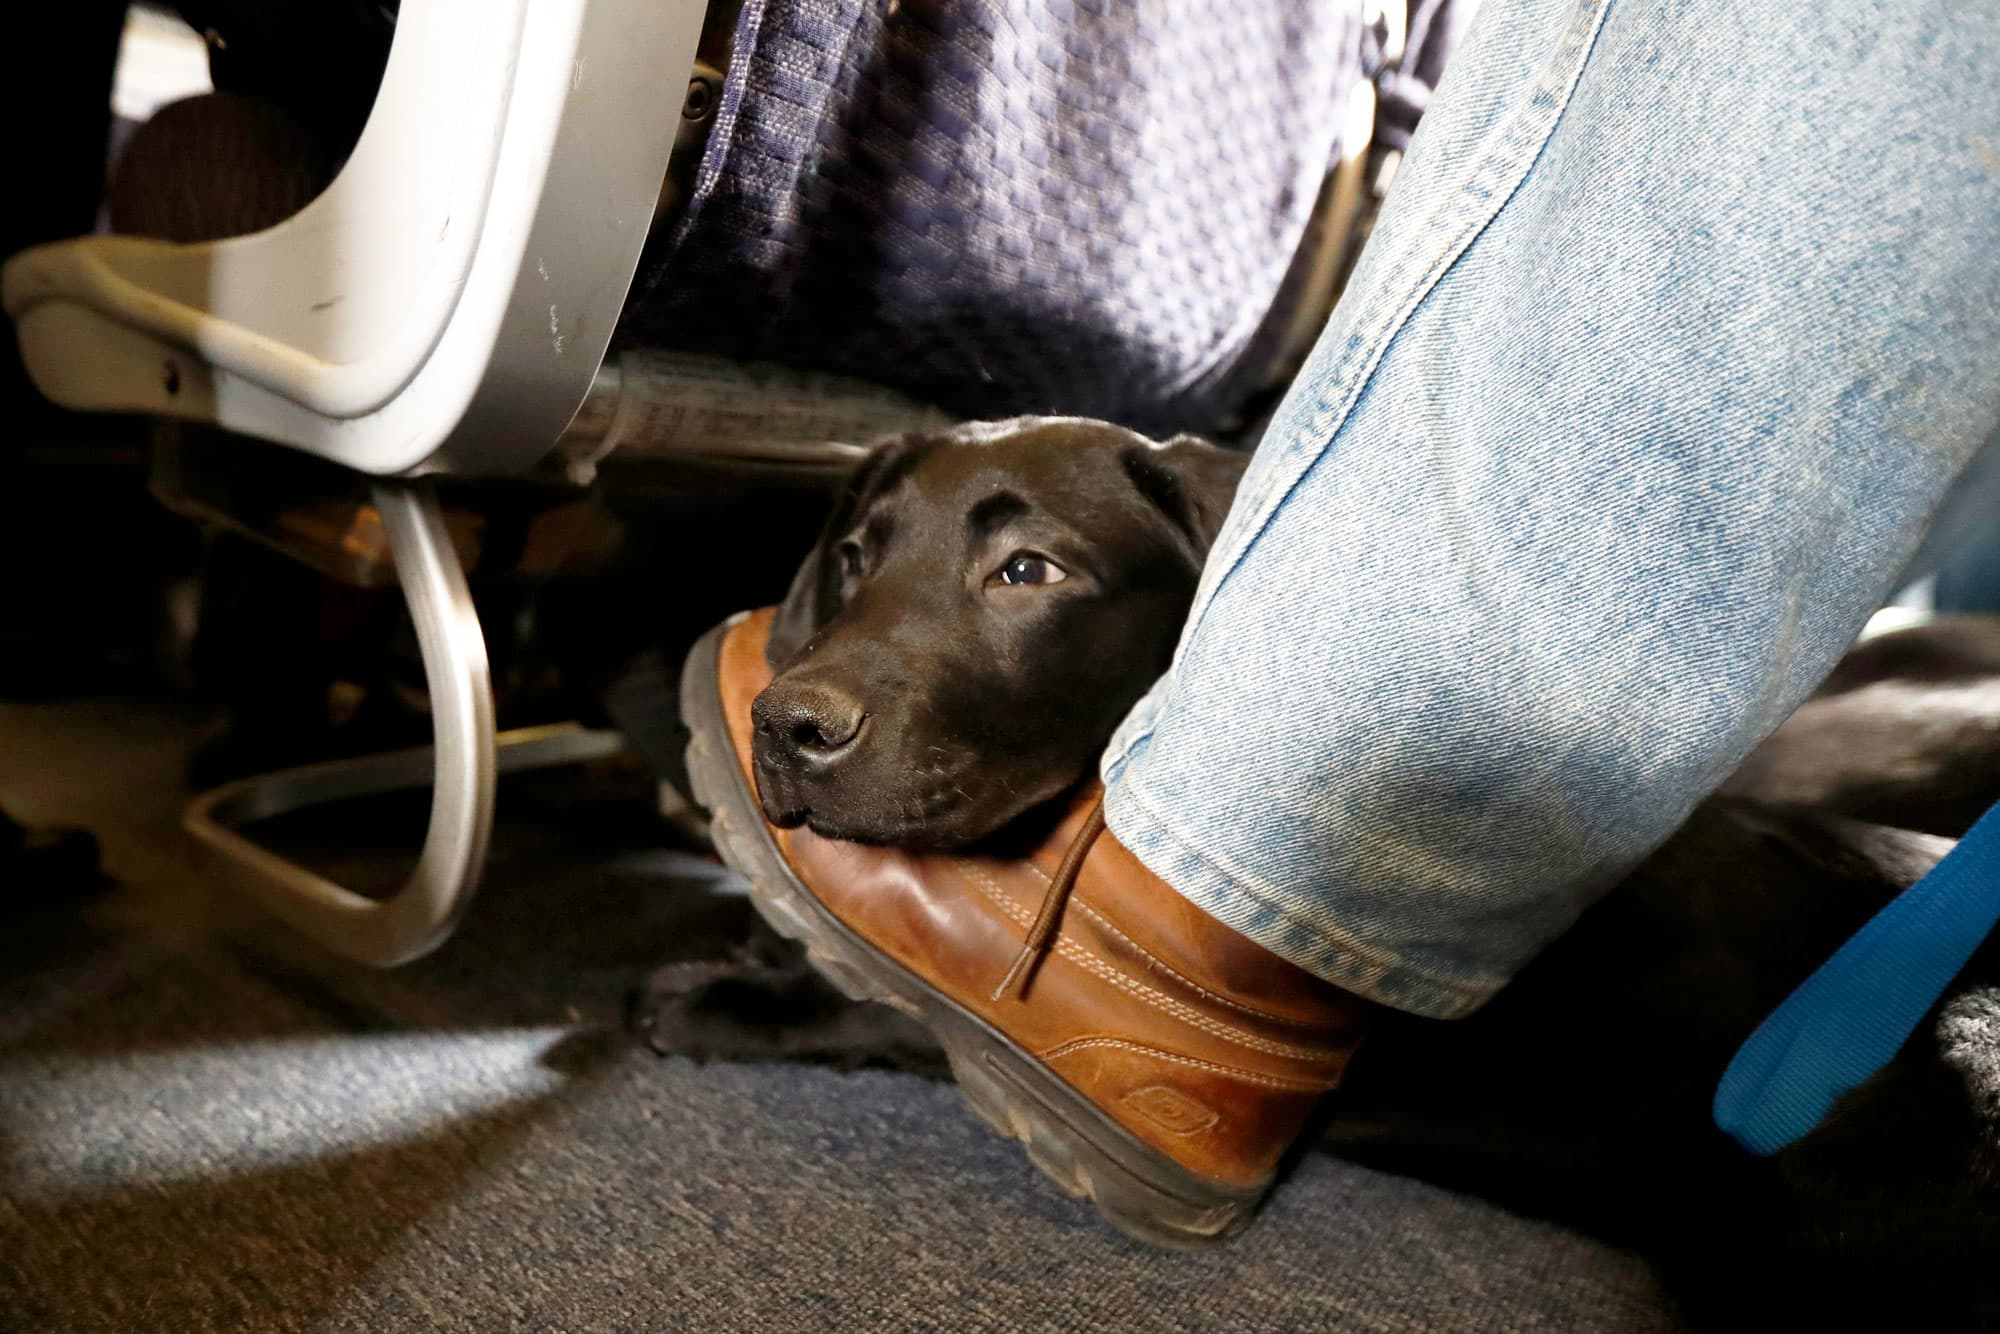 delta updates comfort animal policy to one per passenger no pit bullsdelta updates comfort animal policy to one per passenger\u2014and no pit bulls